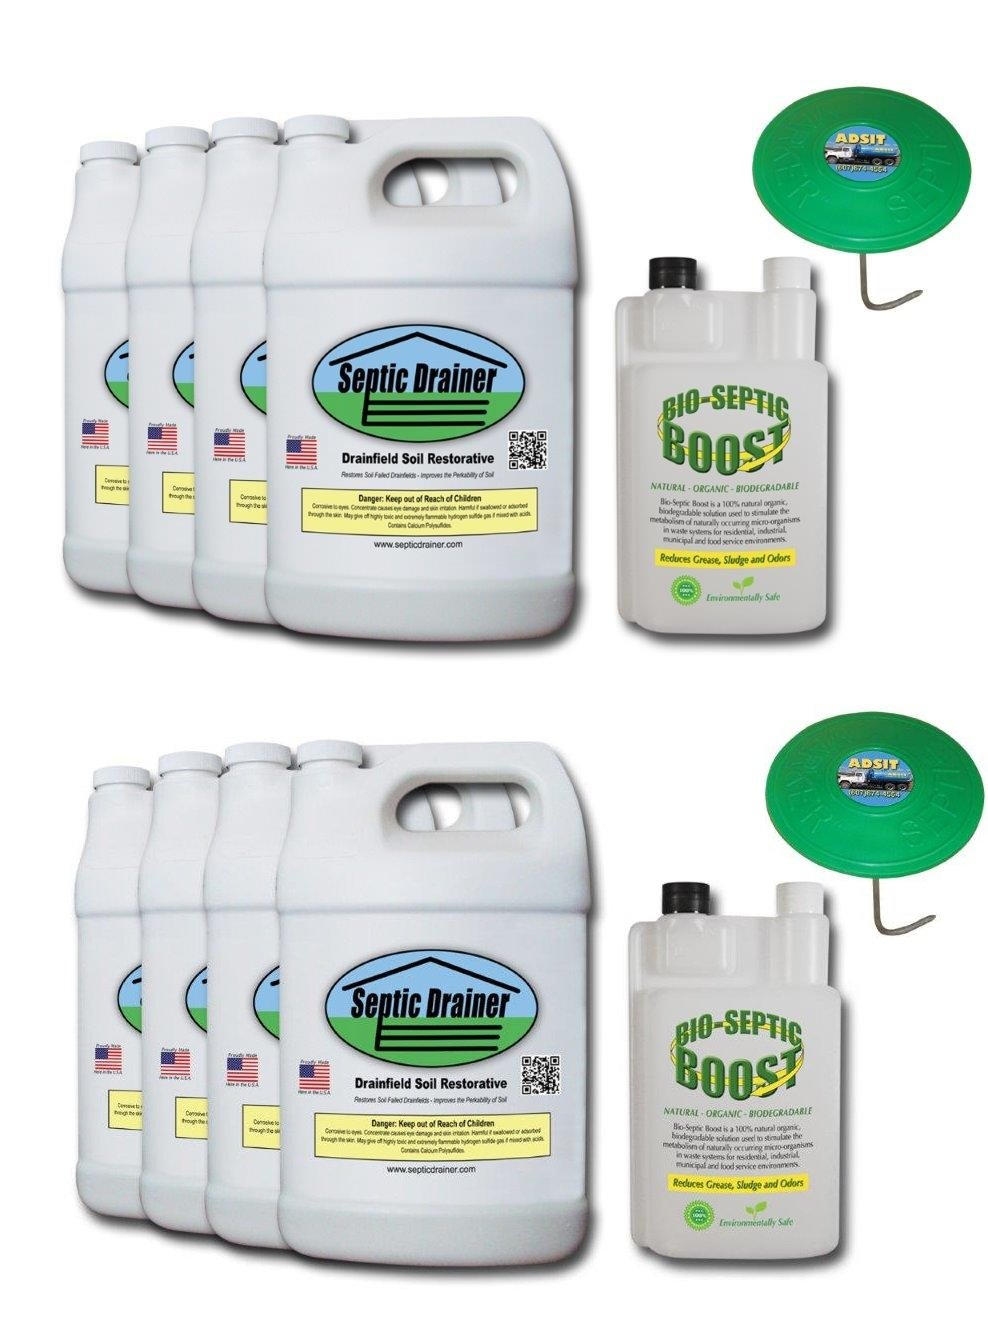 Mega Drain Field Repair Kit   Use For Repairing Large Residential Systems    Includes 8 Gals of SD, 2 Bio-Septic Boosts $559 99 (8 gals Septic Drainer,